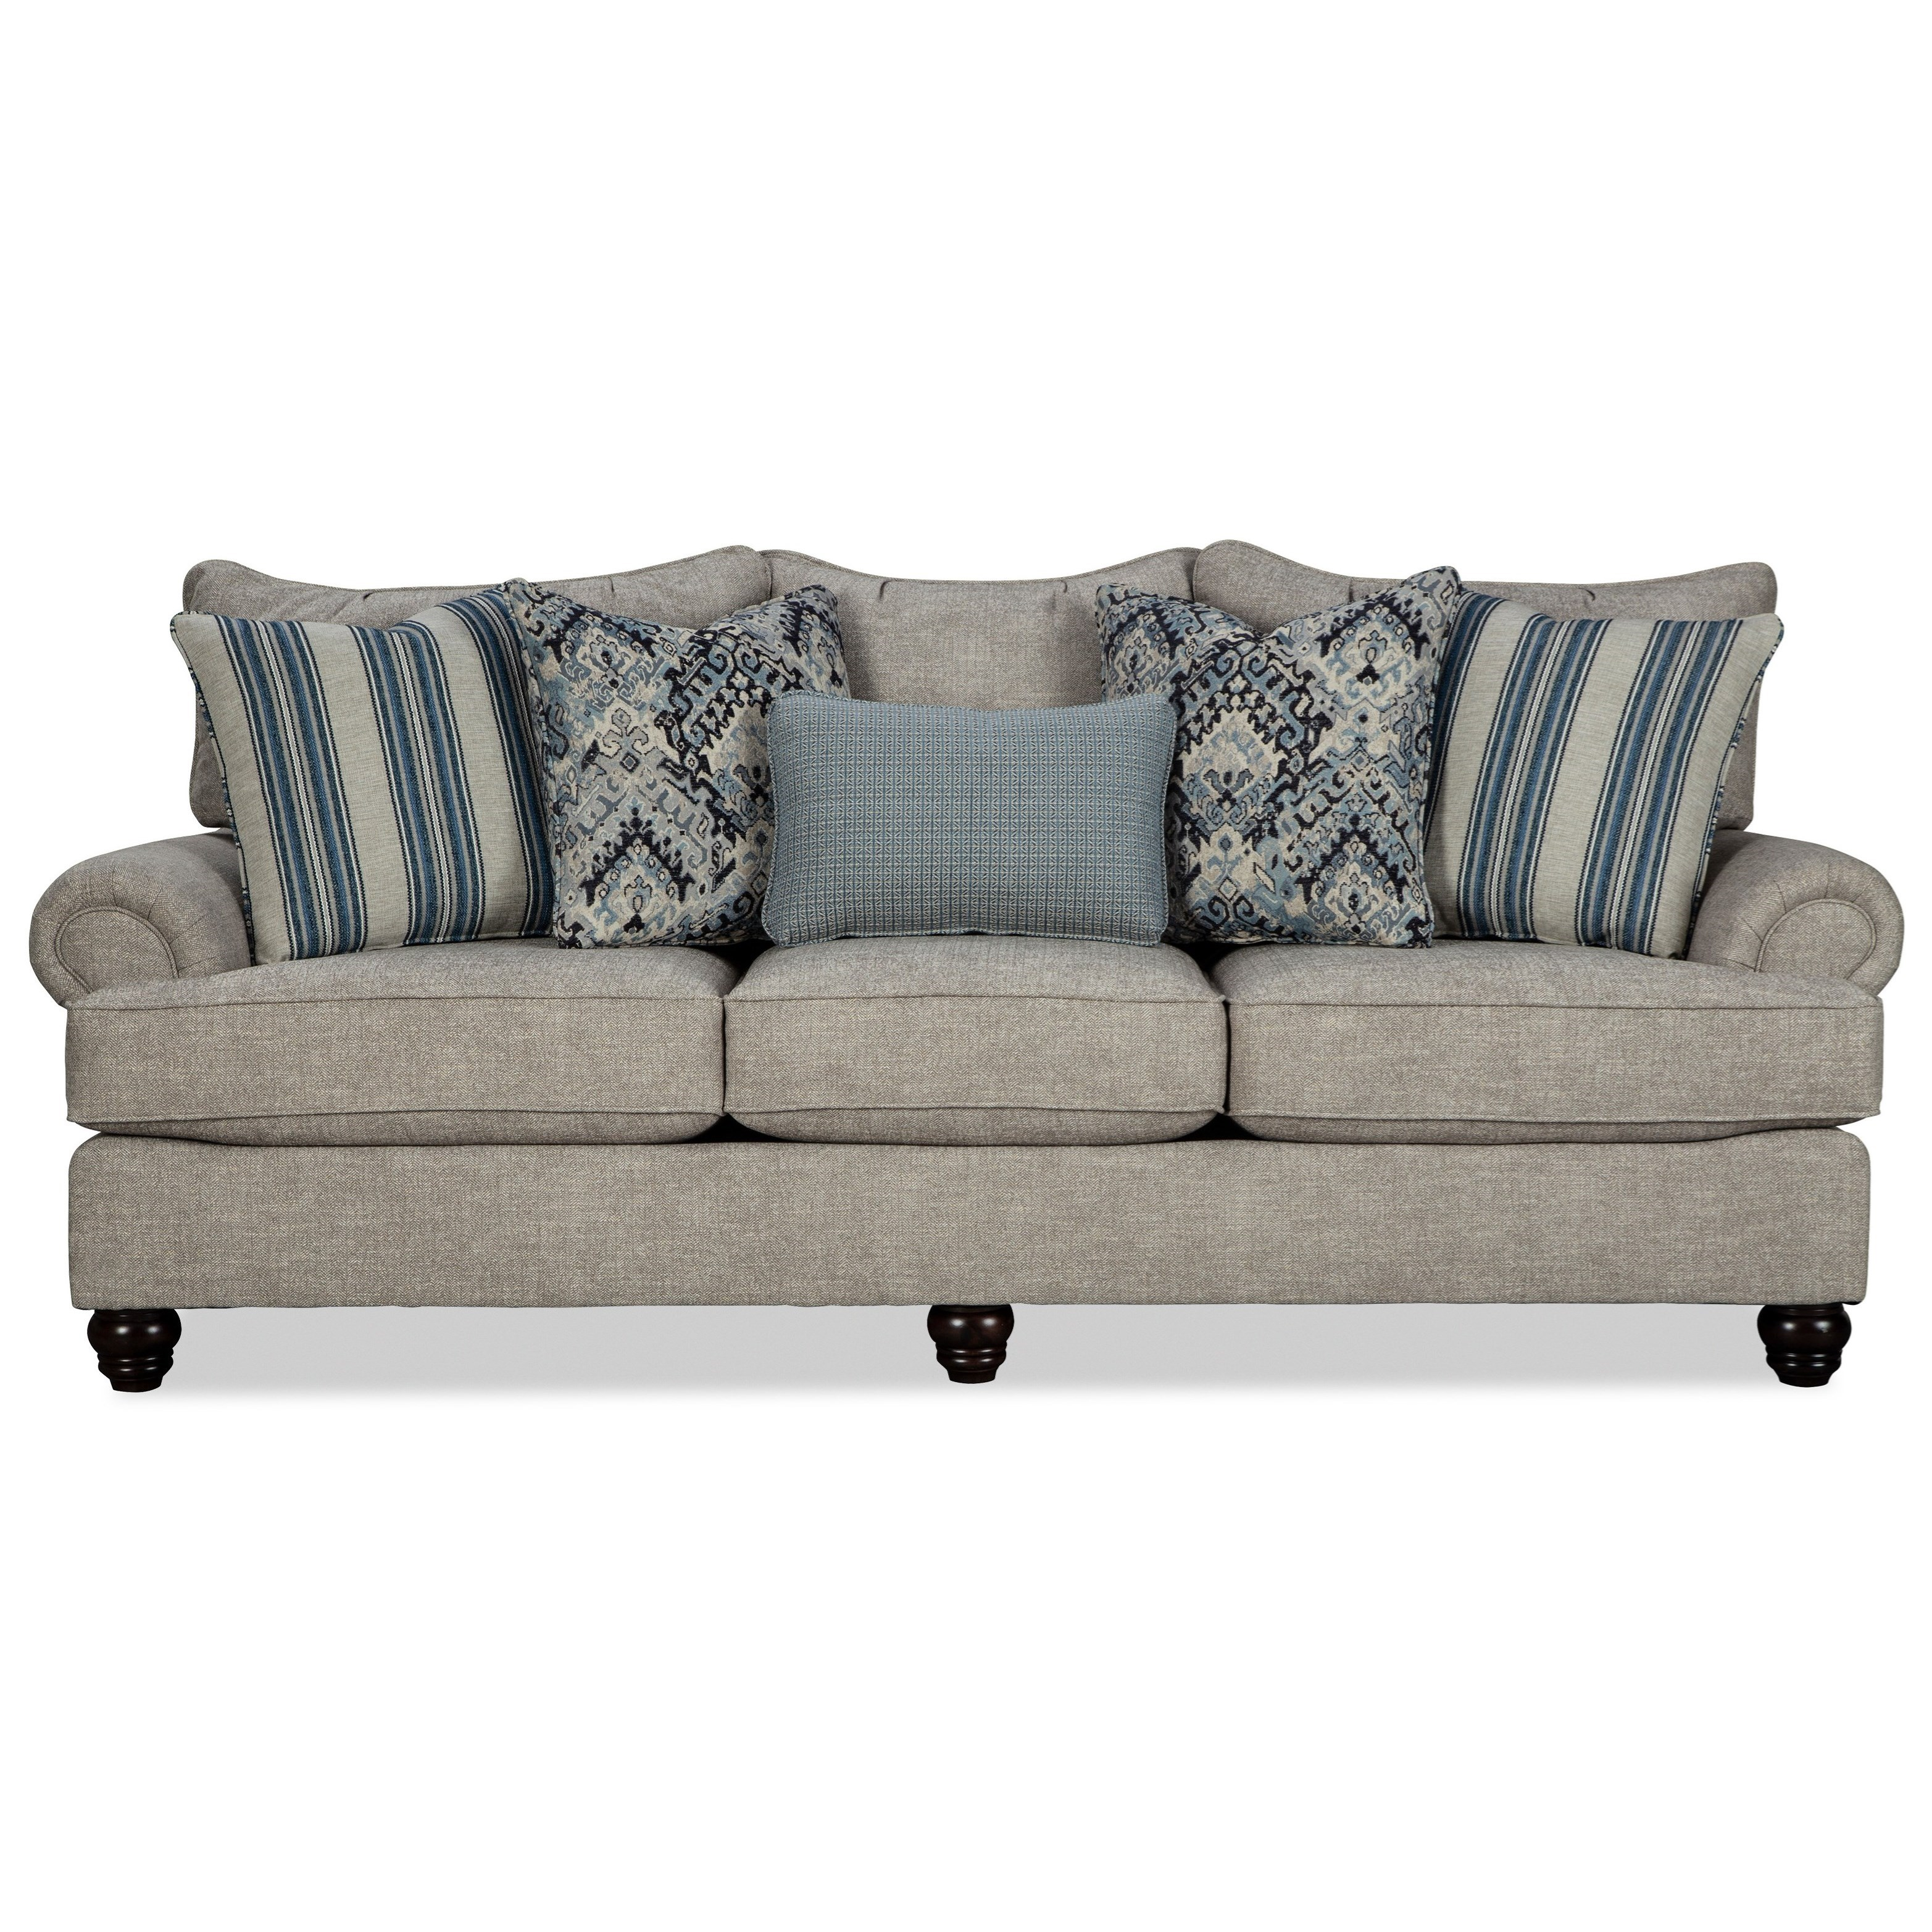 7970 Sofa by Craftmaster at Bullard Furniture